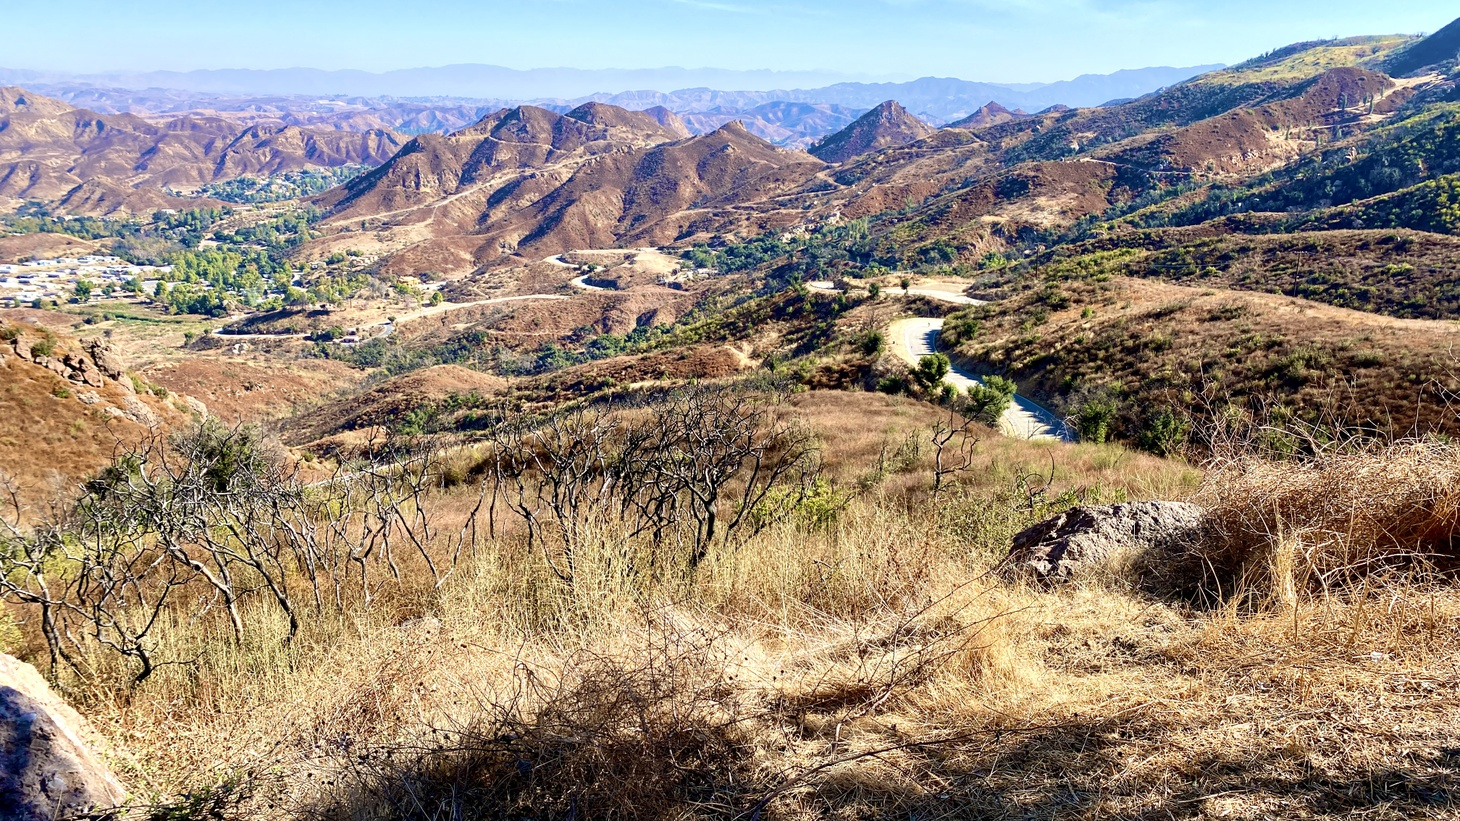 A landscape view from Mulholland Highway in Malibu, California, November 14, 2020. The Santa Monica Mountains National Recreation Area currently includes Malibu. Congressman Adam Schiff is pushing for a major expansion of the area.